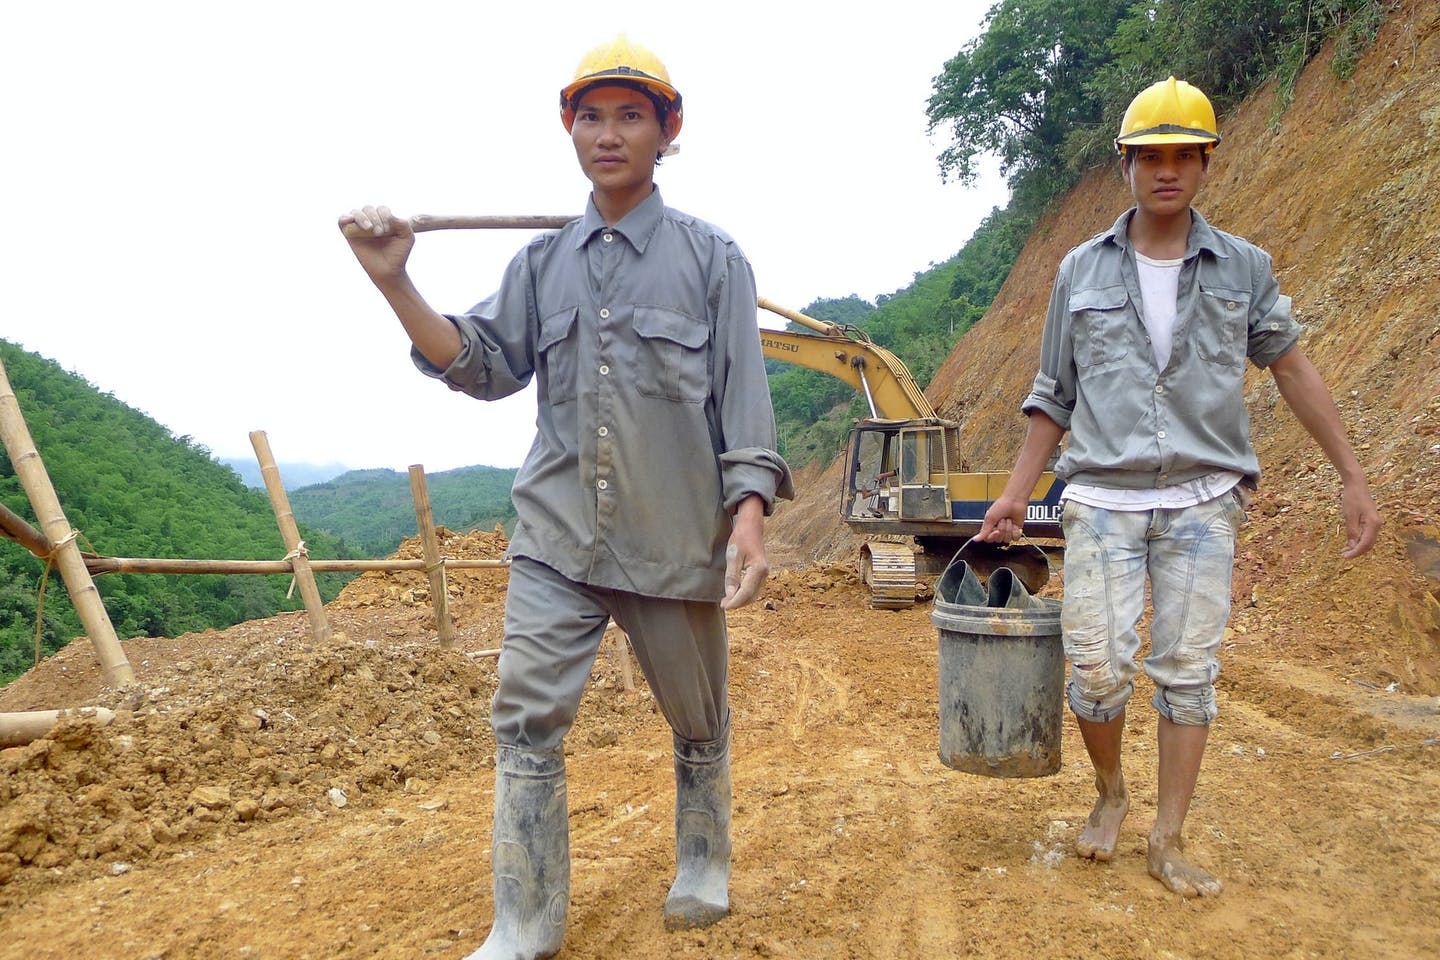 Trung Son Hydropower Project,Construction site, Mai Chau district, Vietnam. Photo: